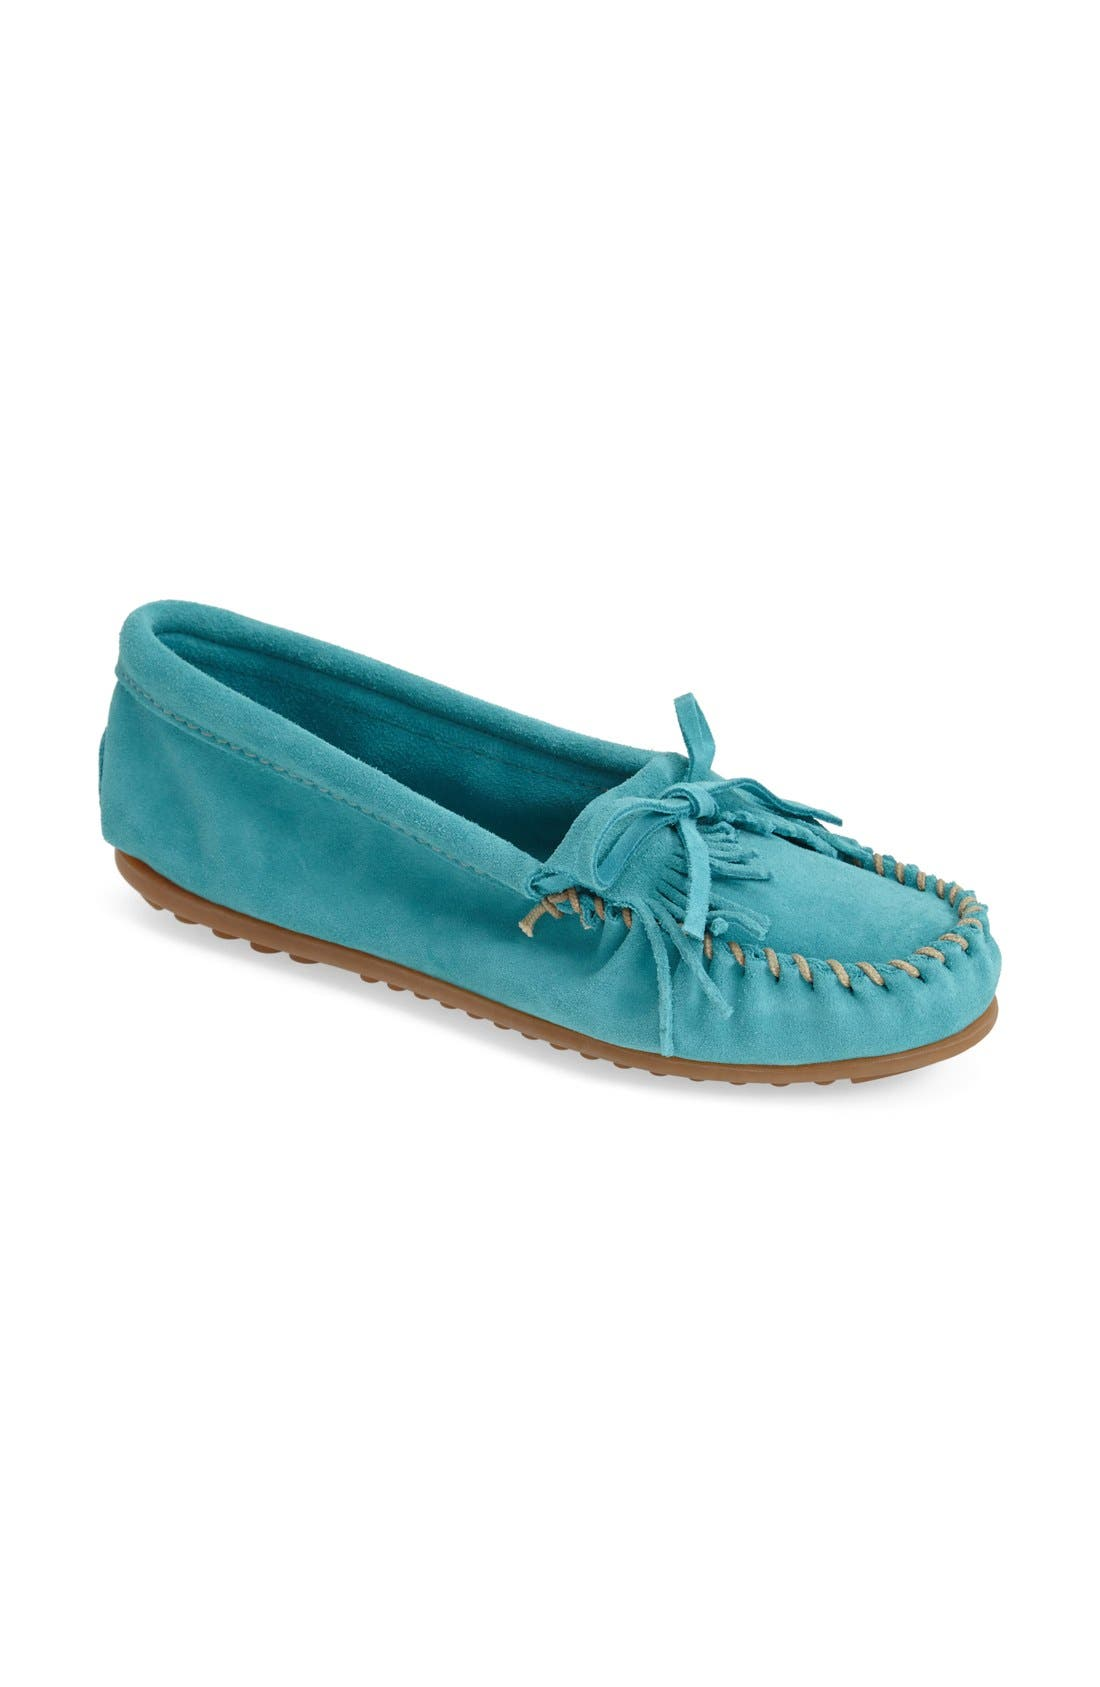 'Kilty' Suede Moccasin,                             Alternate thumbnail 2, color,                             TURQUOISE